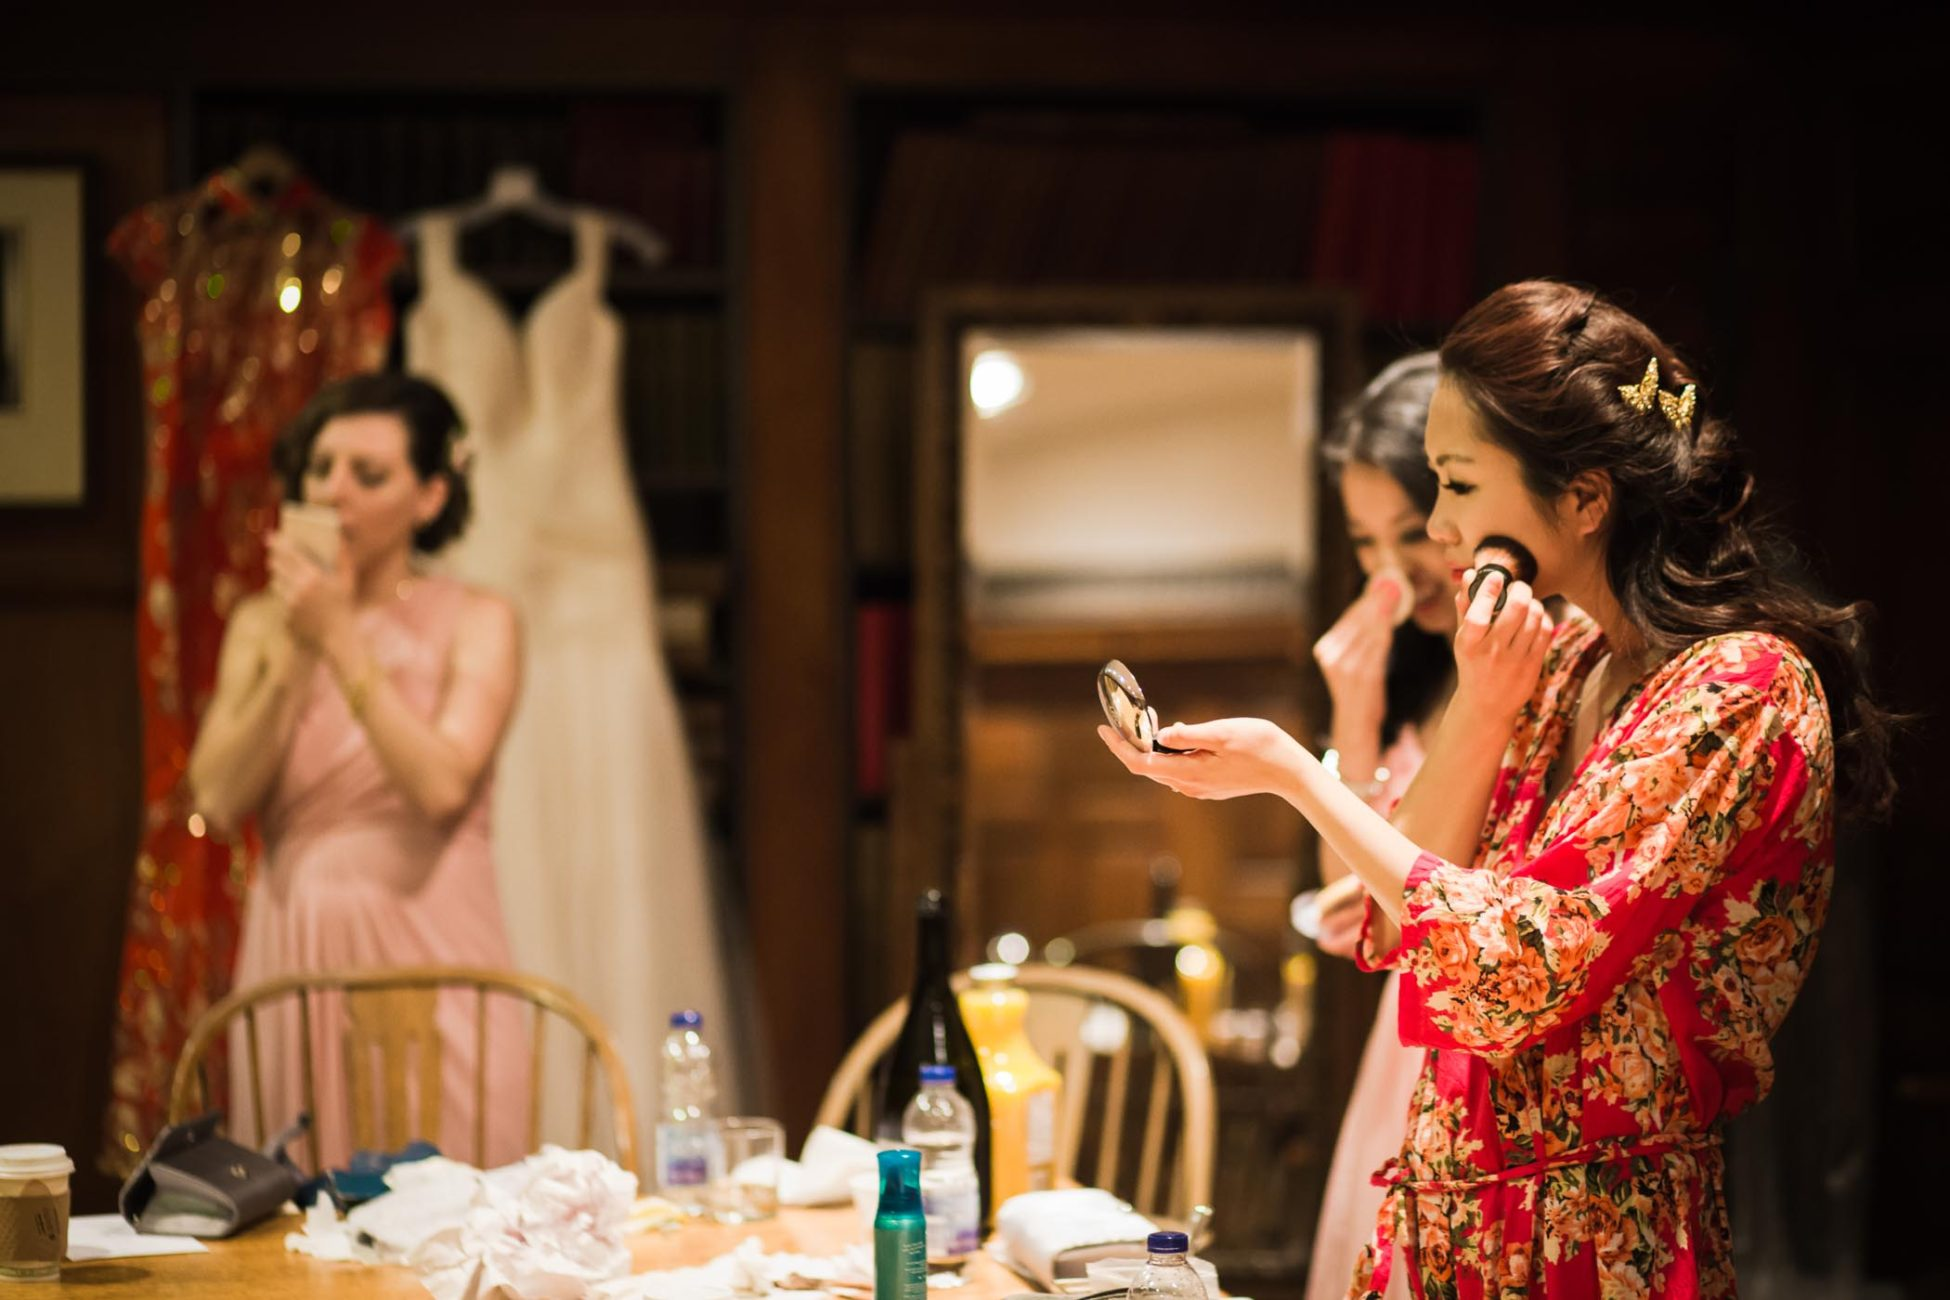 The bride dressed in a red robe doing makeup with bridesmaids before dinner in this Hart House wedding photography by Pavel Kounine.